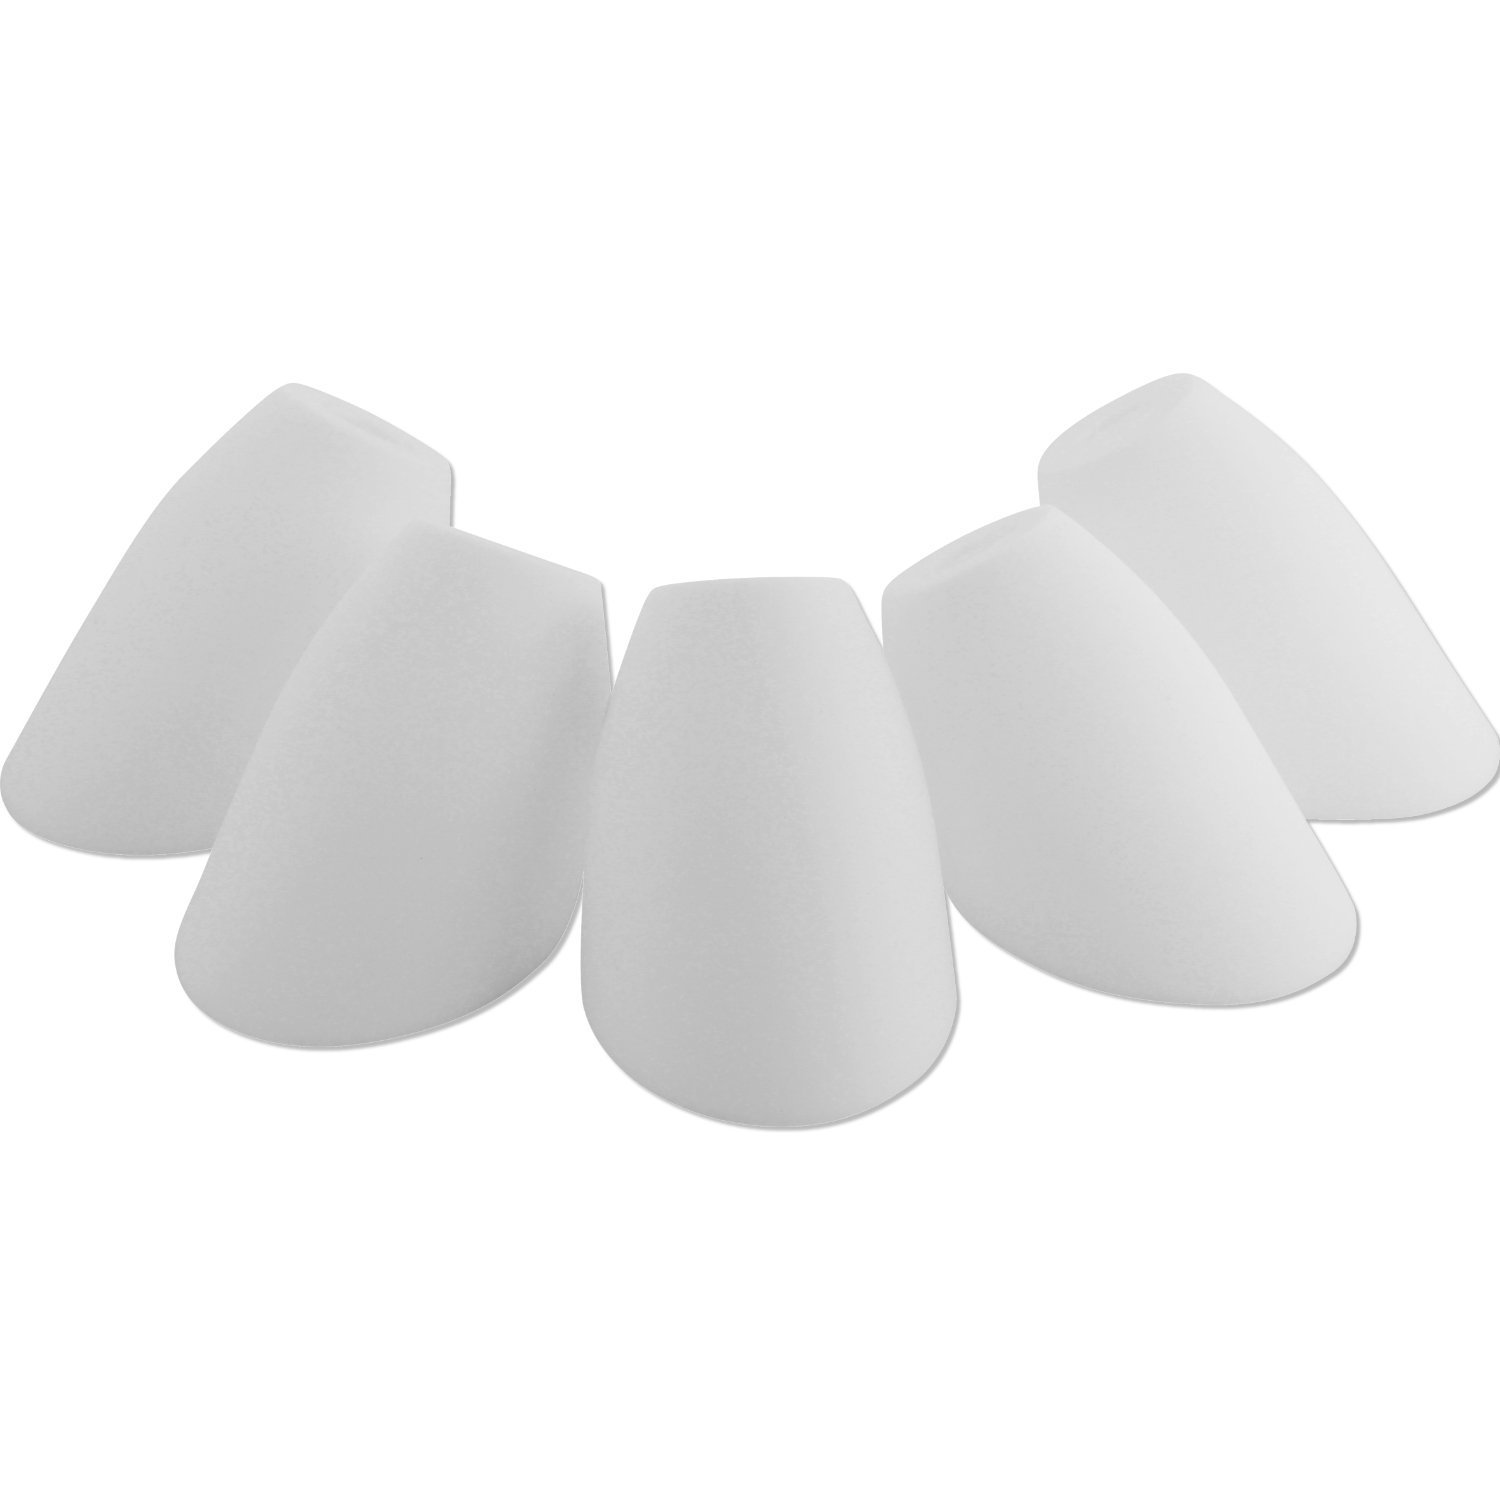 Amazon replacement shades for candelabra base only base hole amazon replacement shades for candelabra base only base hole dimension 083 inches 21 mm white acrylic shades model 16197 98 set of 5 home aloadofball Image collections